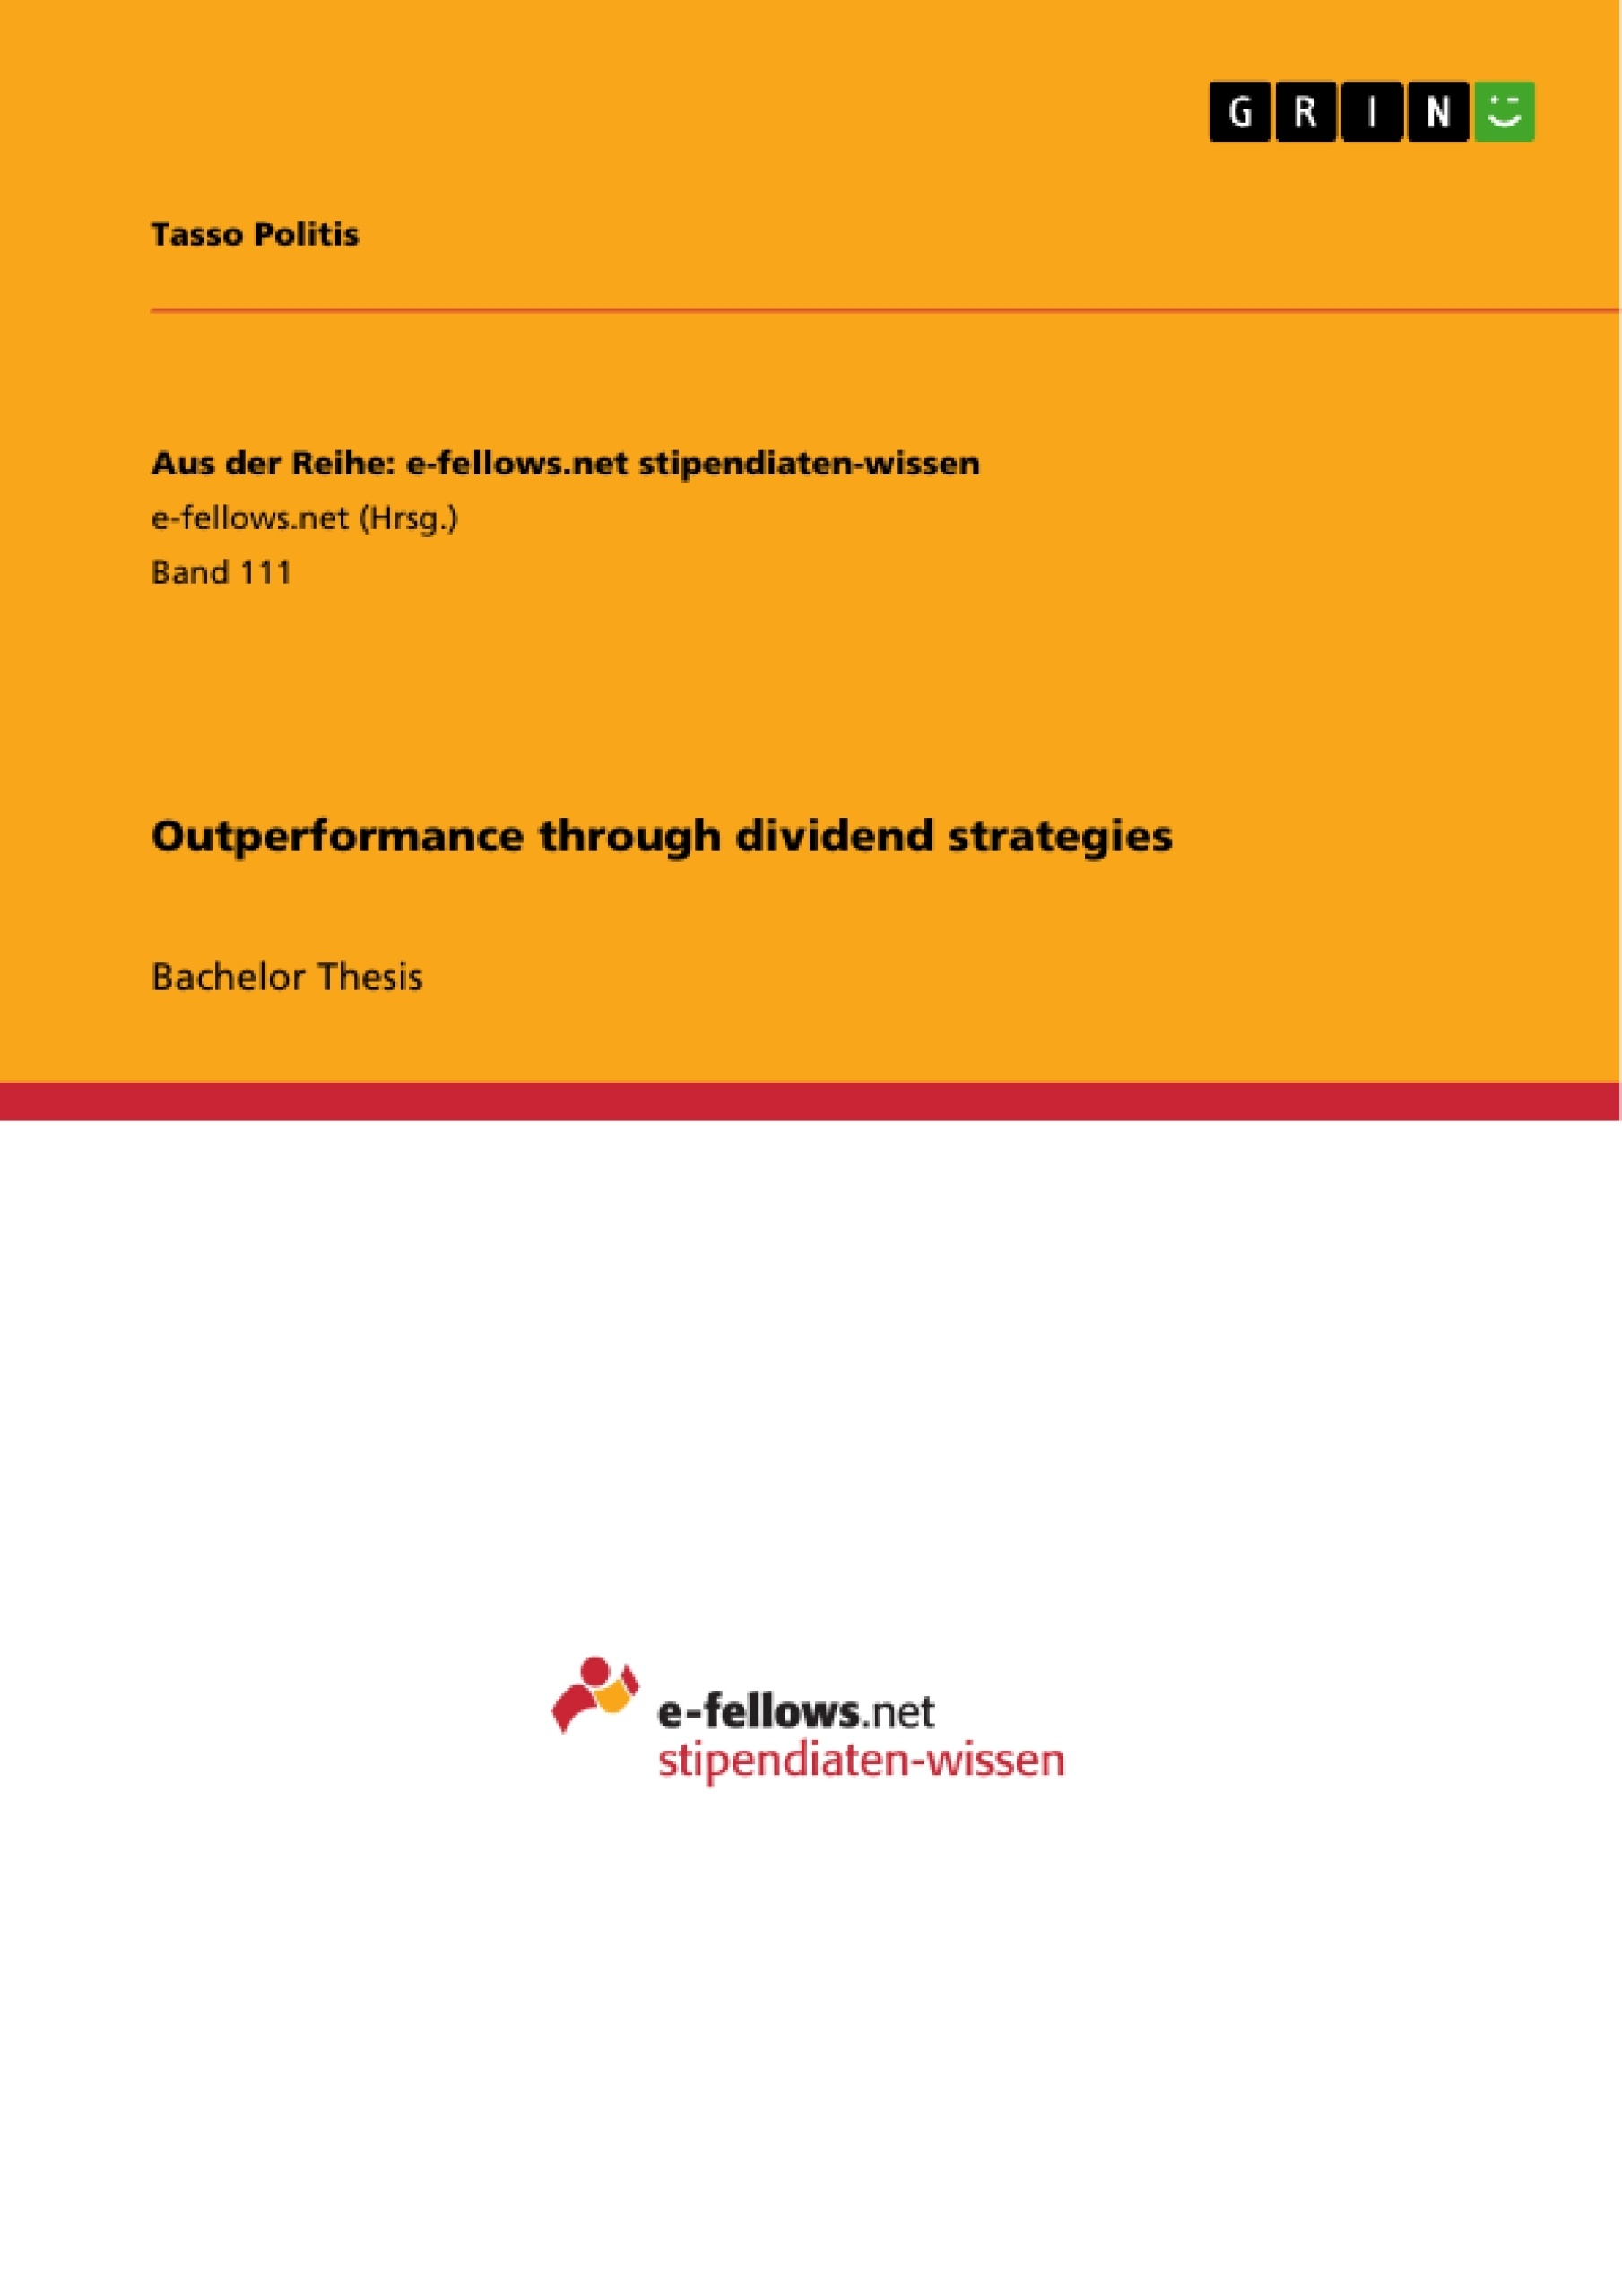 Title: Outperformance through dividend strategies